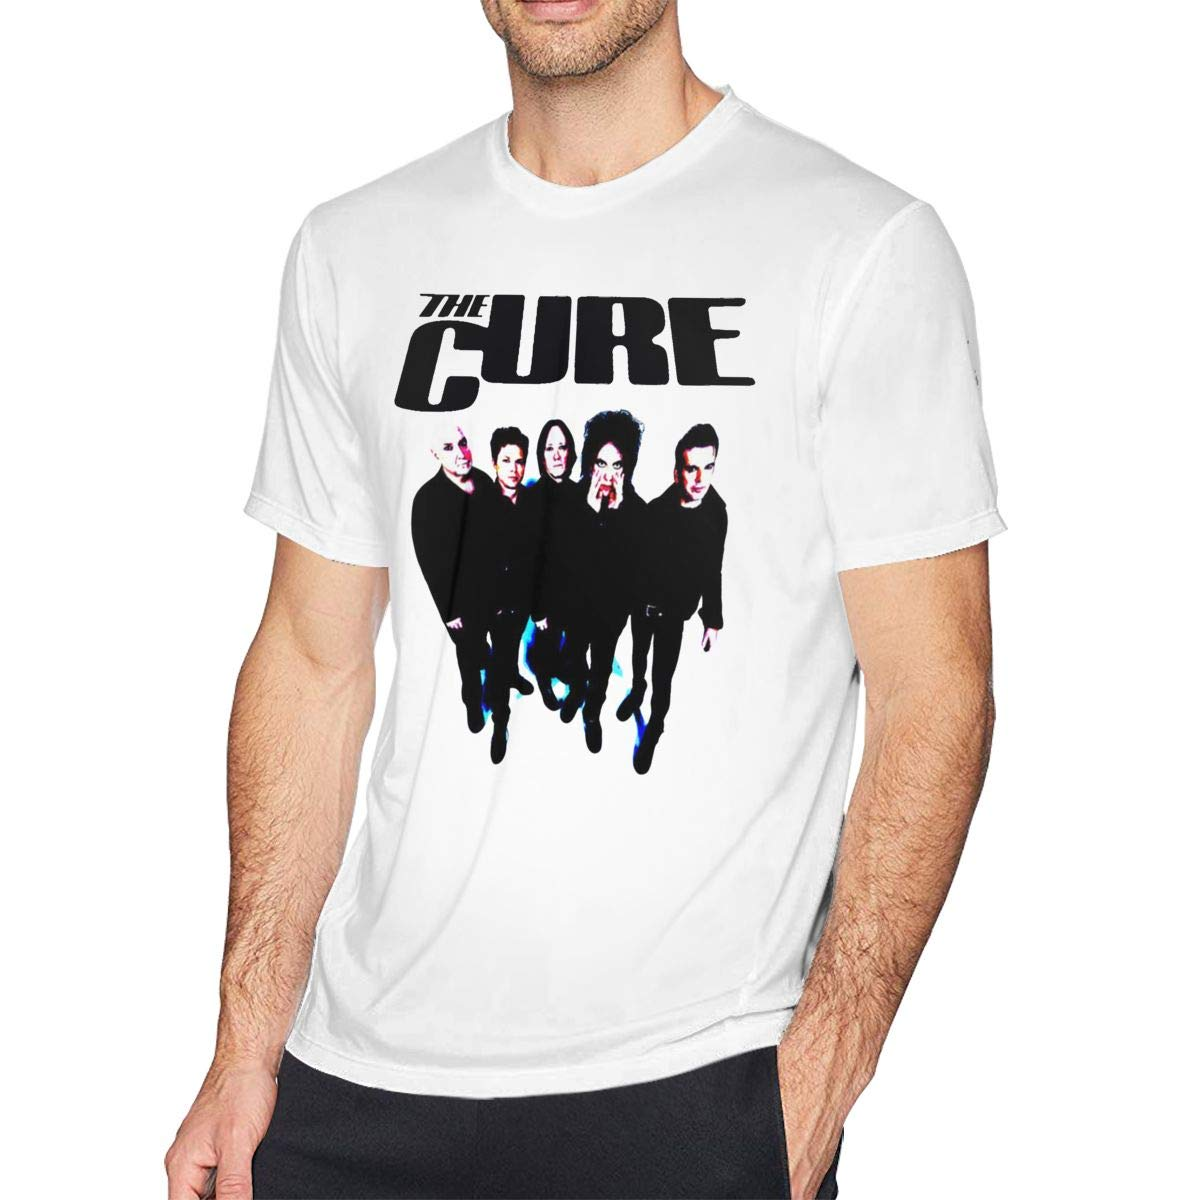 Mens The Live Cure Tee T-Shirt Black